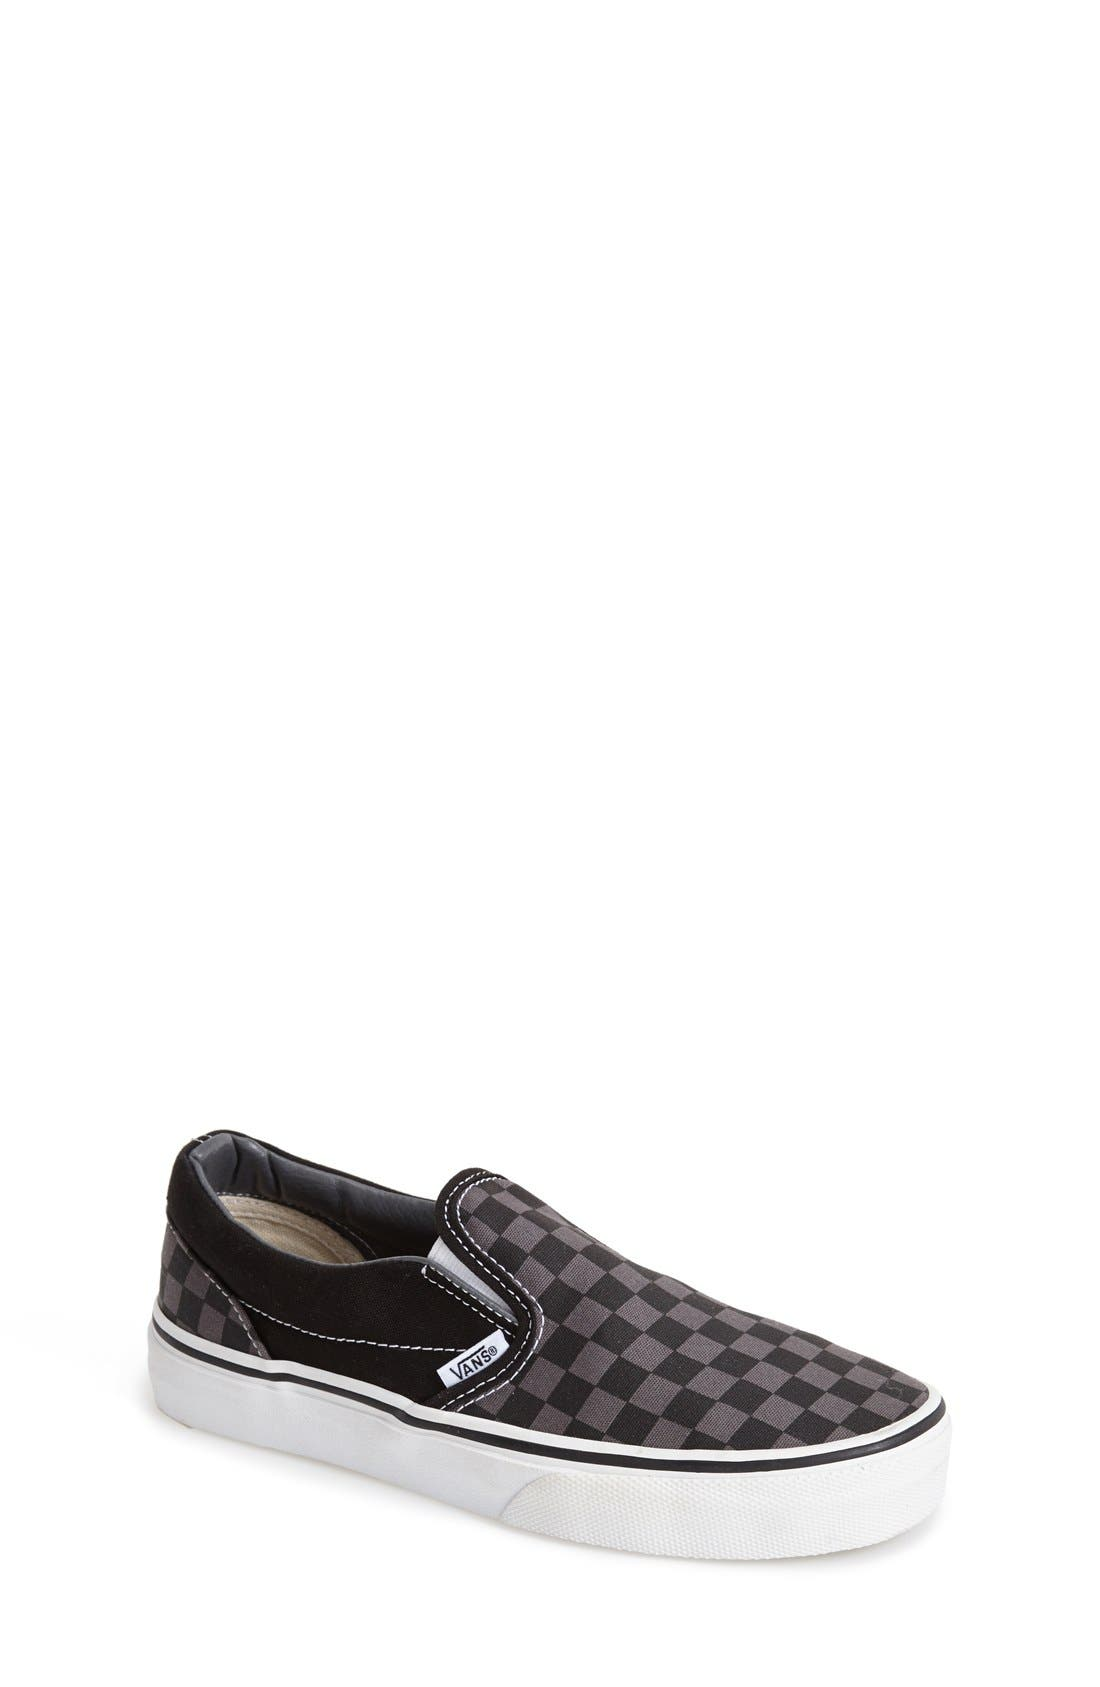 VANS Classic Checker Slip-On, Main, color, CHECKERBOARD/ BLACK/ PEWTER